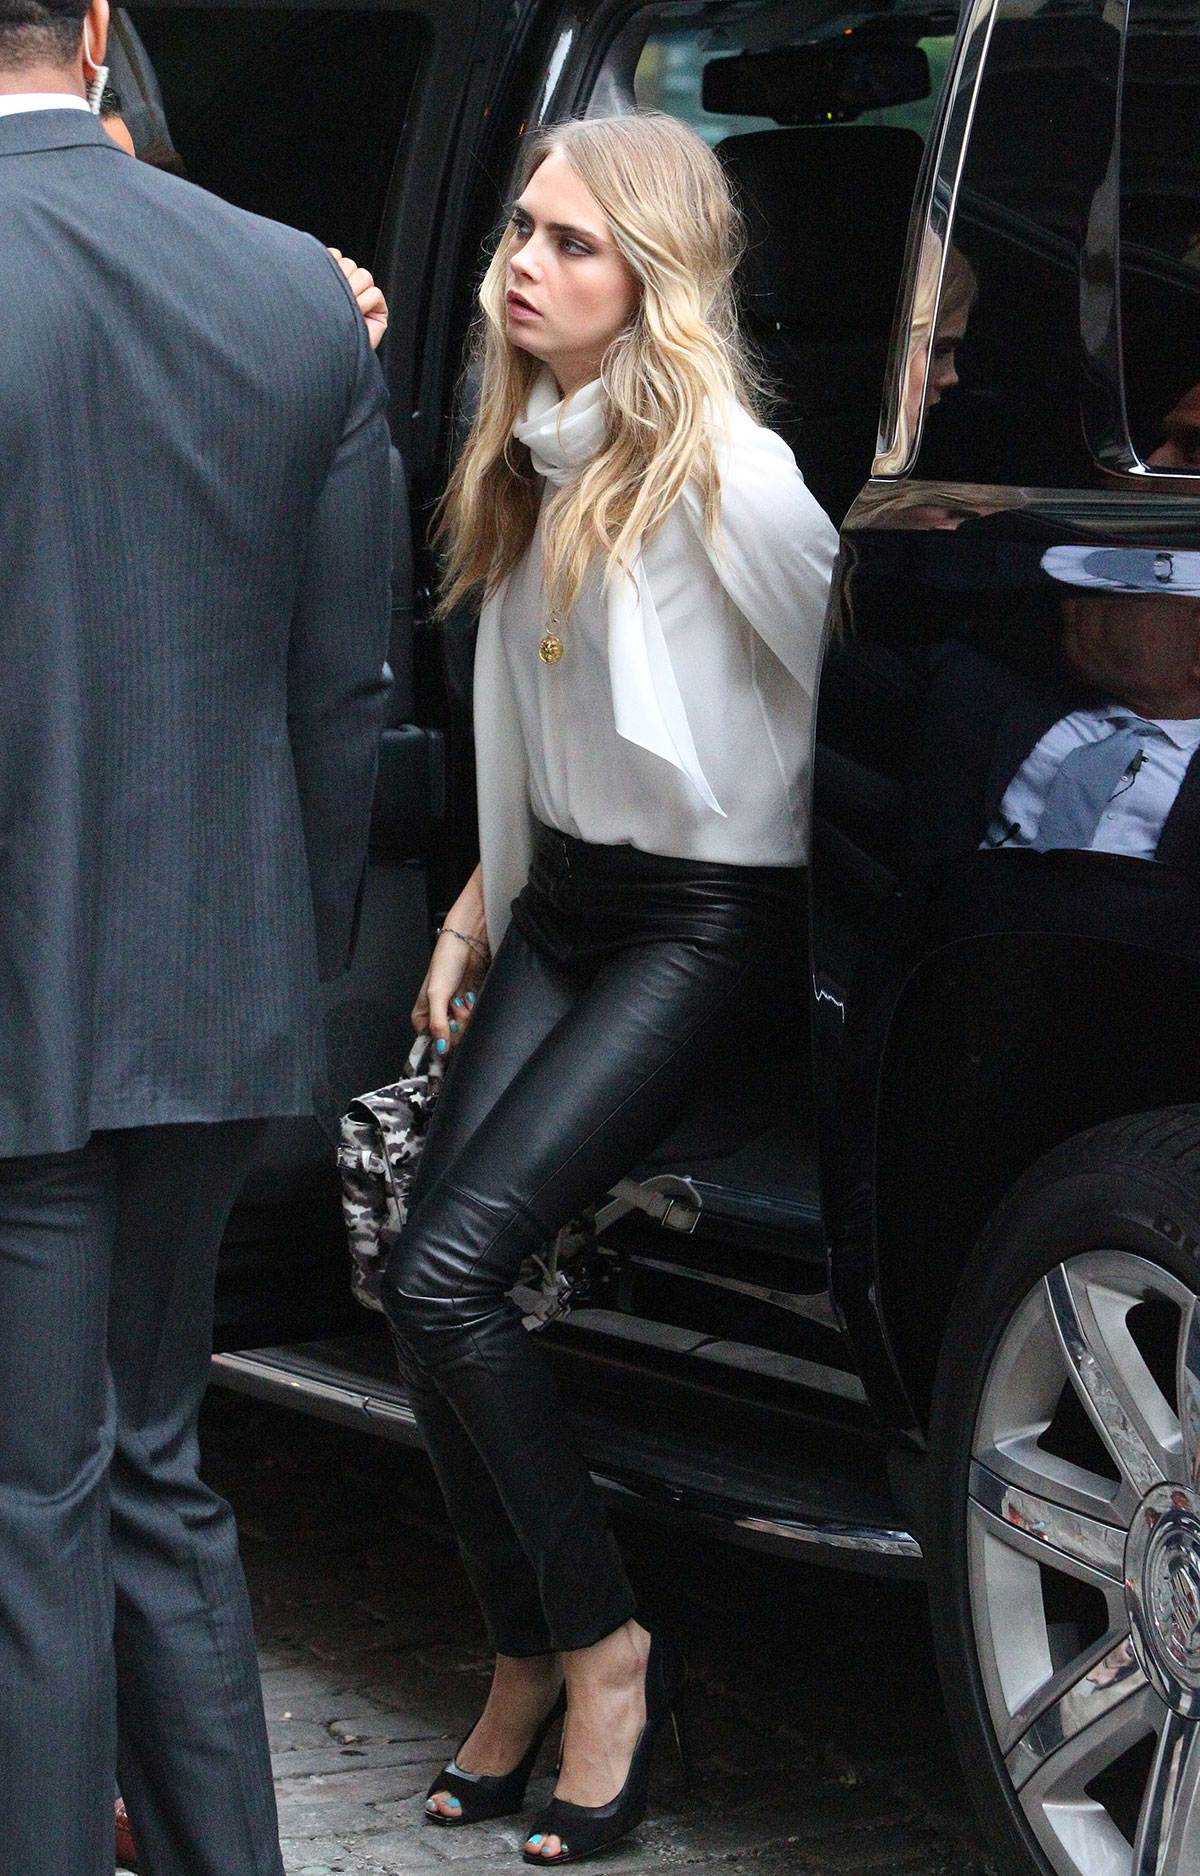 Cara Delevingne out and about in New York City